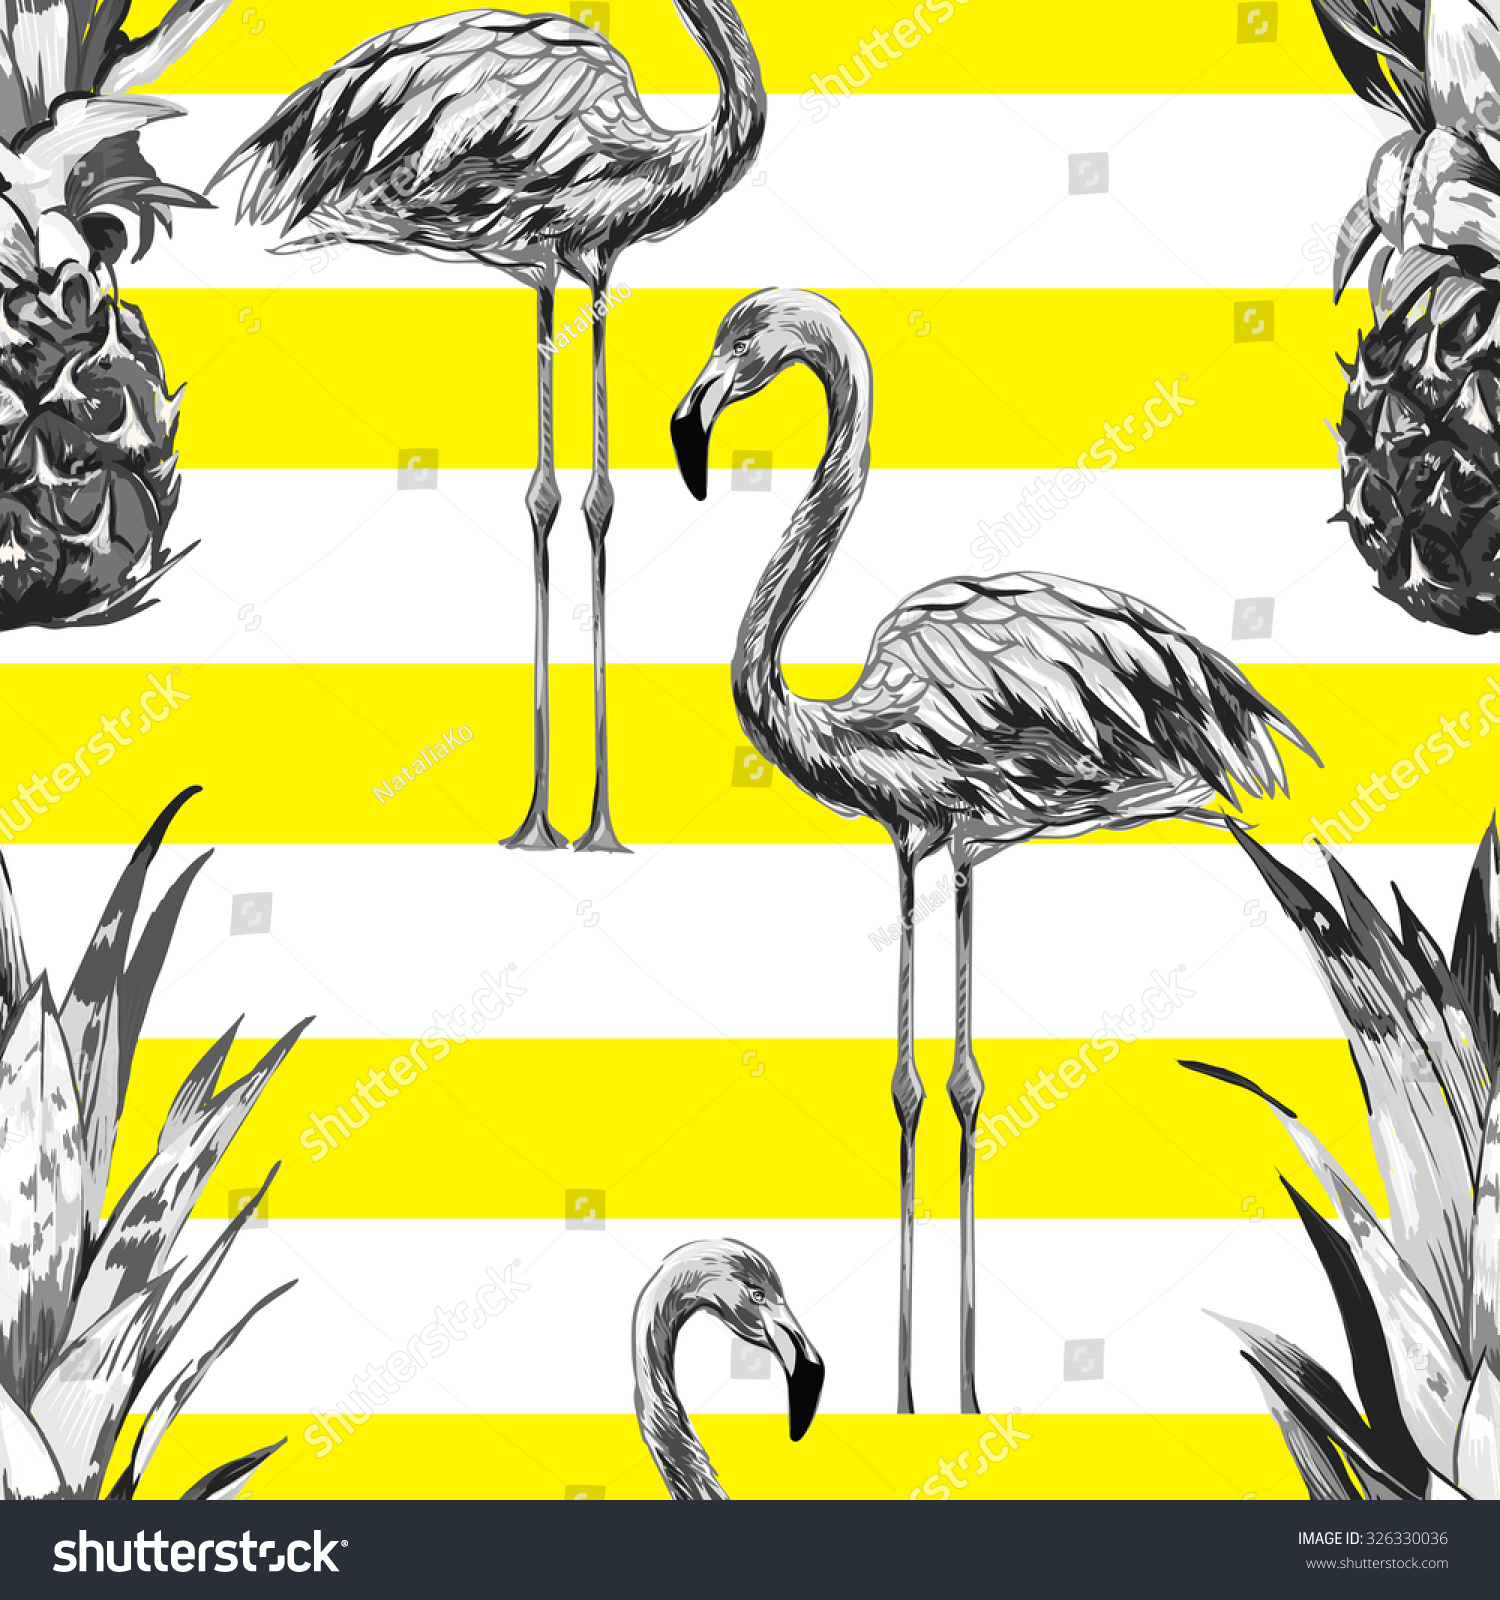 Beautiful seamless vector floral tropical pattern background with pineapples monochrome flamingos Abstract striped geometric texture